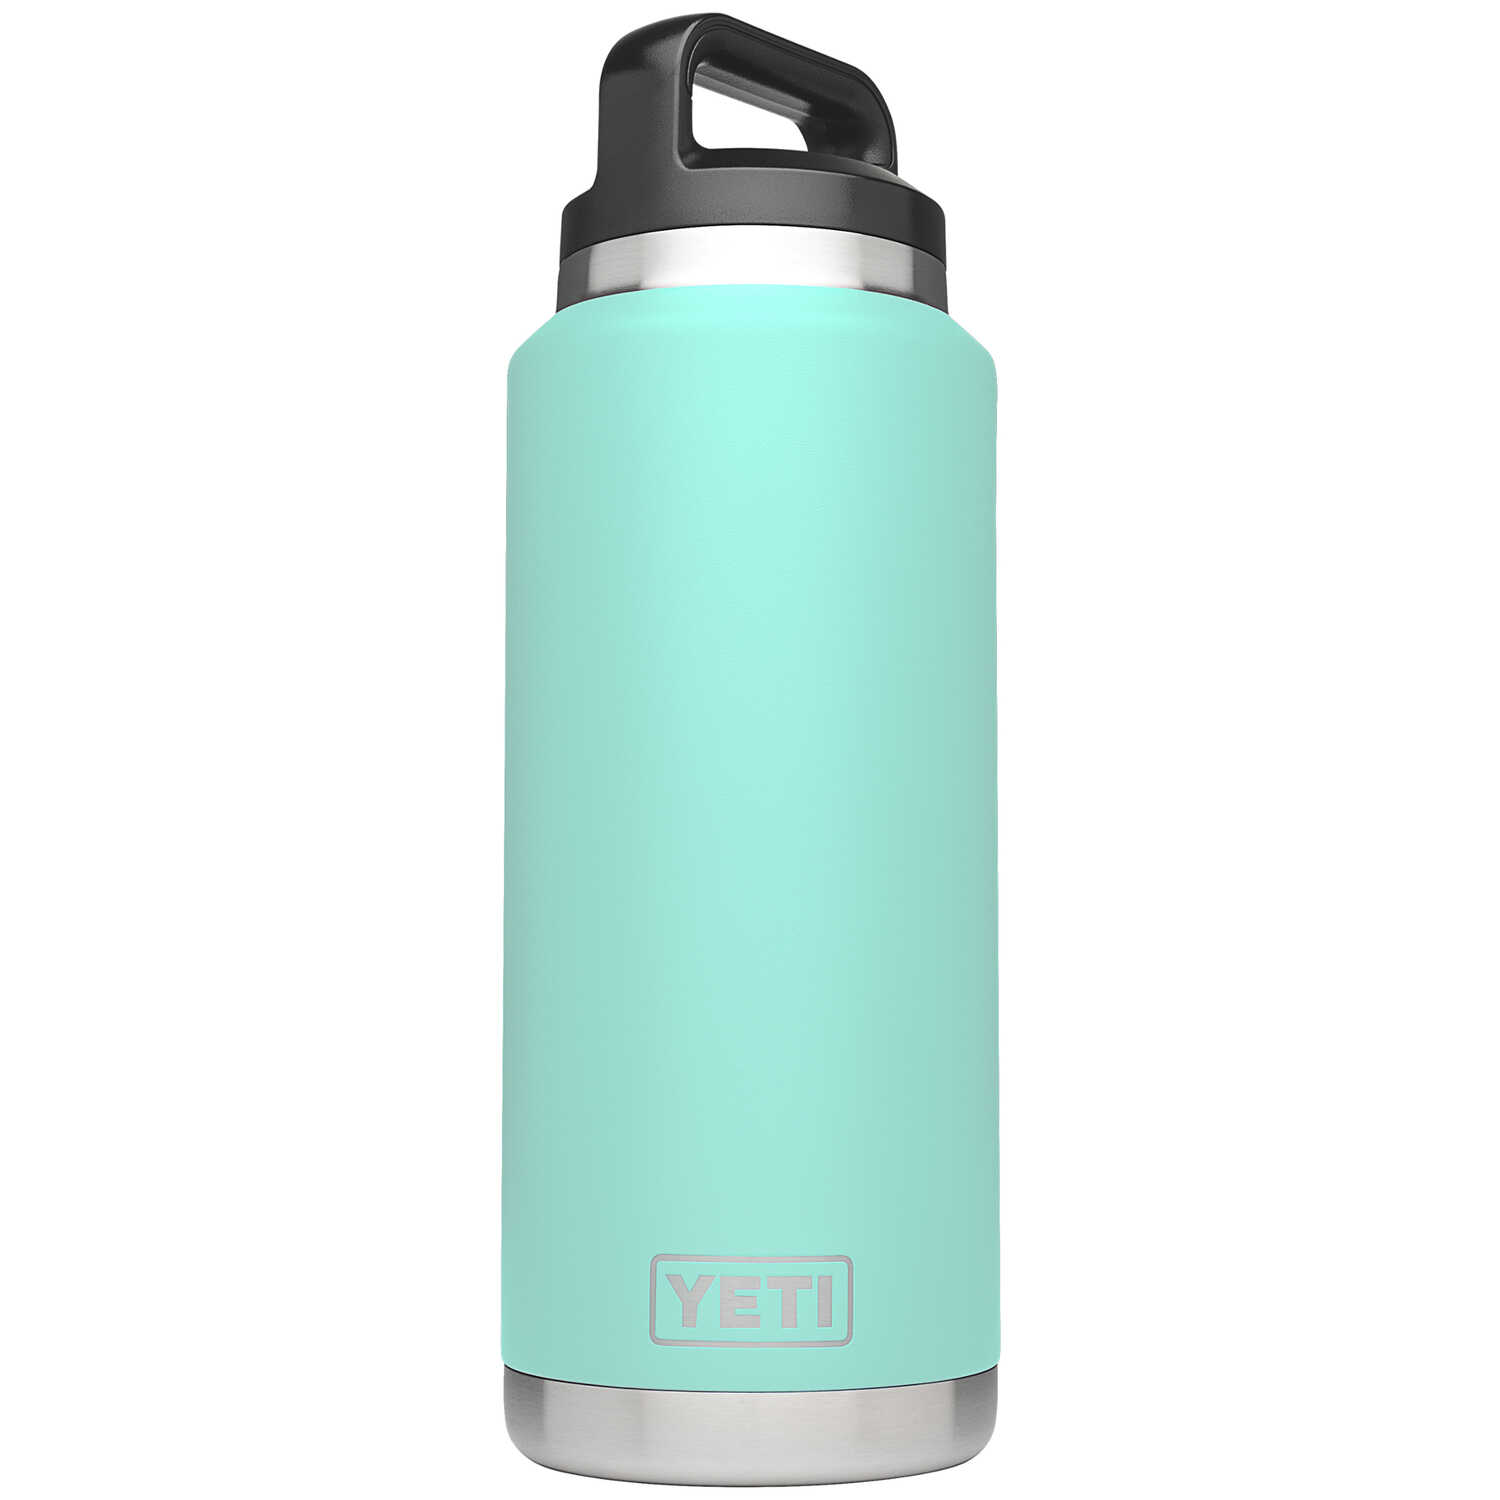 YETI  Rambler  Seafoam Green  Stainless Steel  Insulated Bottle  BPA Free 36 oz.